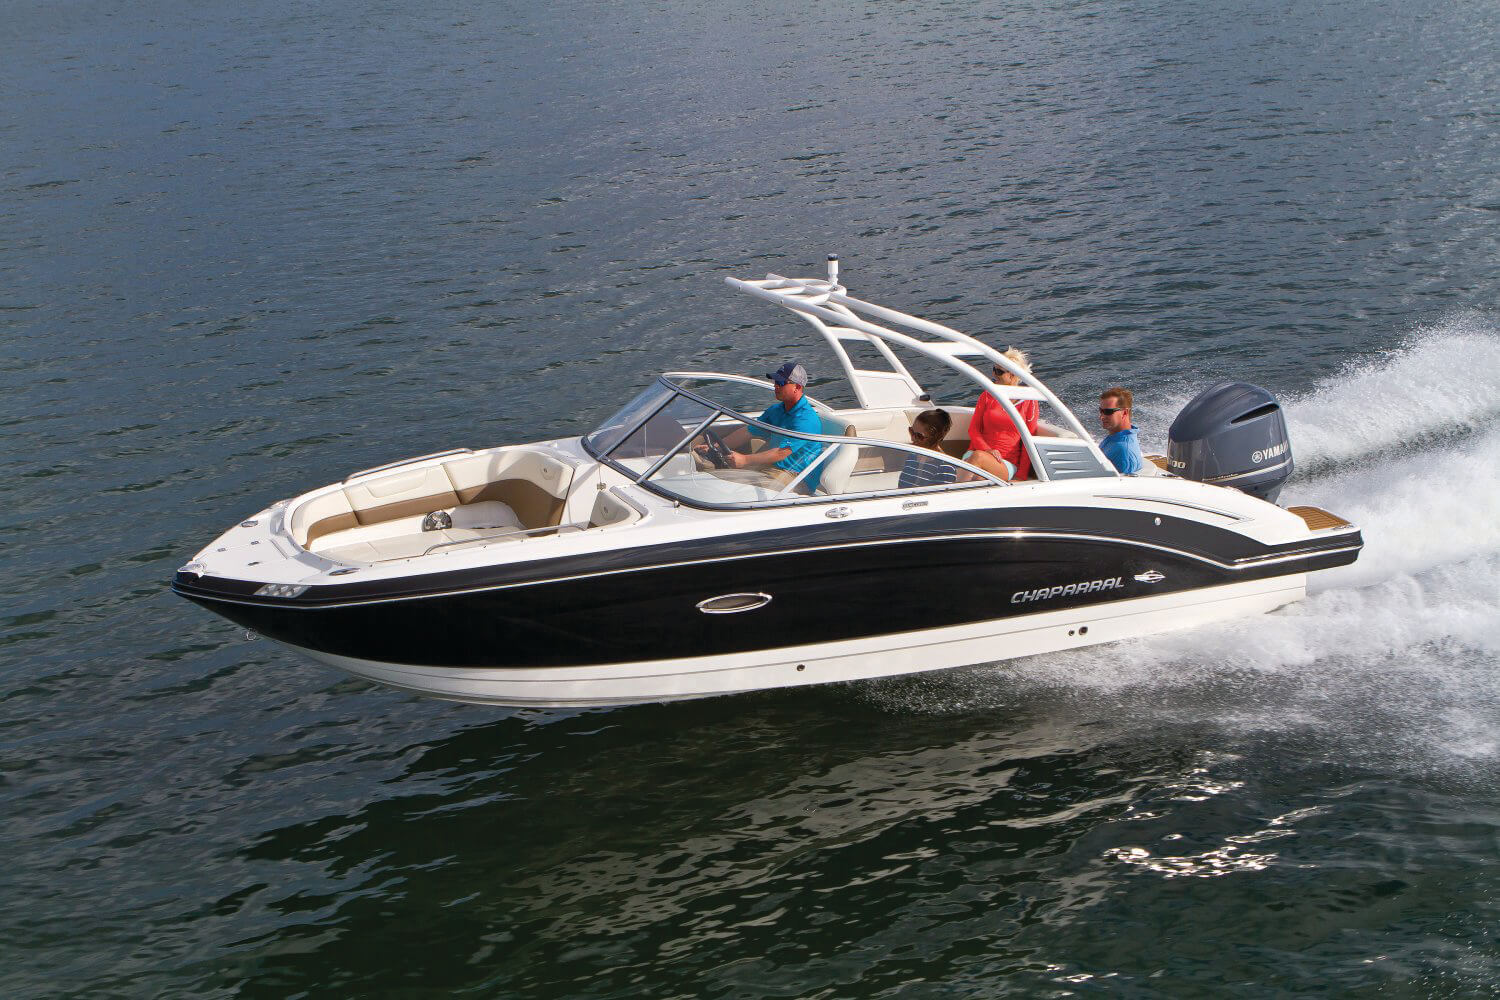 Chaparral 250 rental in Ibiza